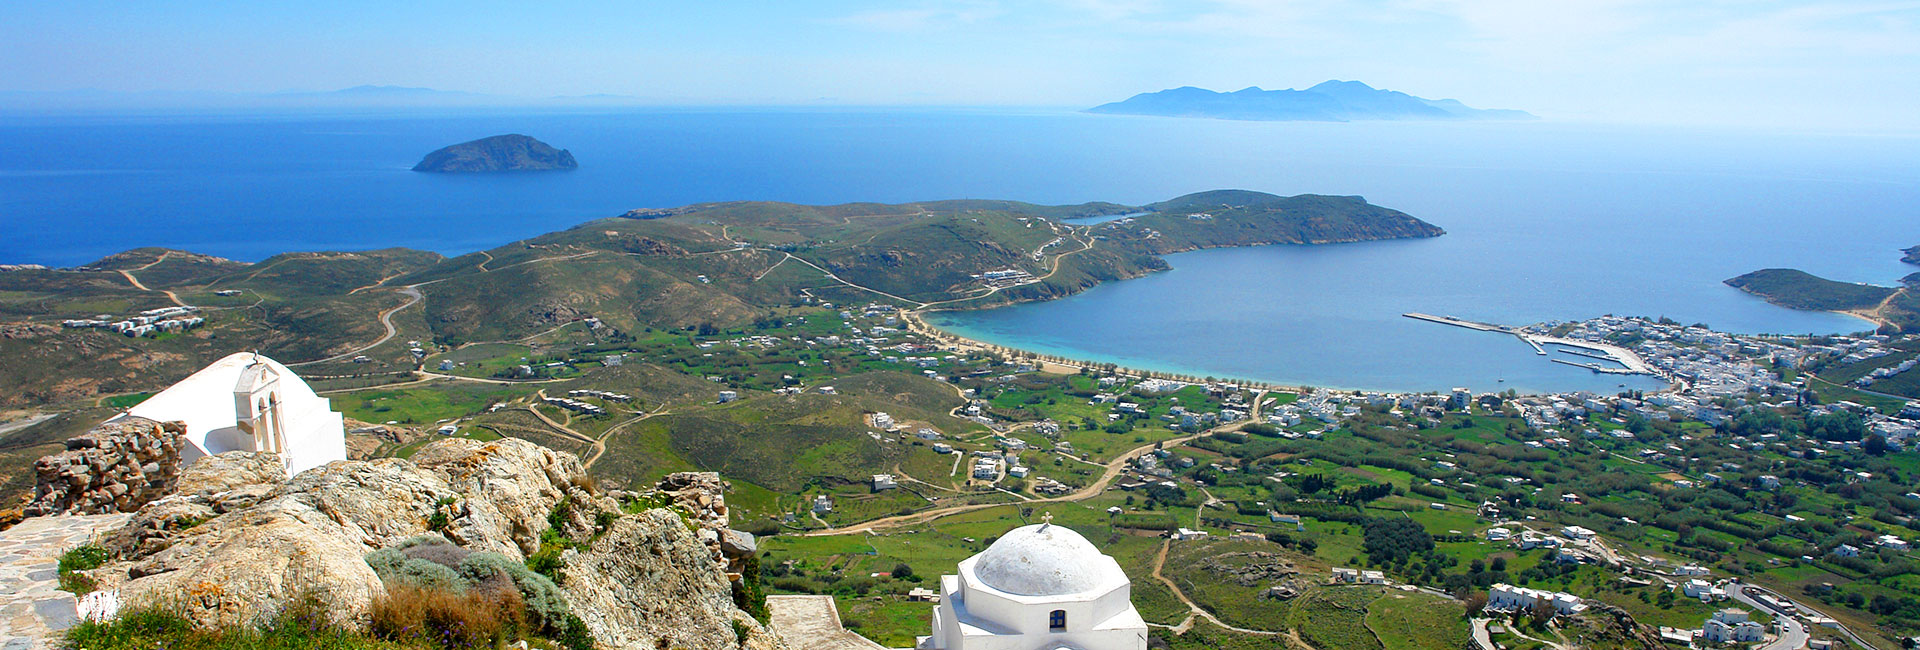 Panoramic image of Livadi in Serifos